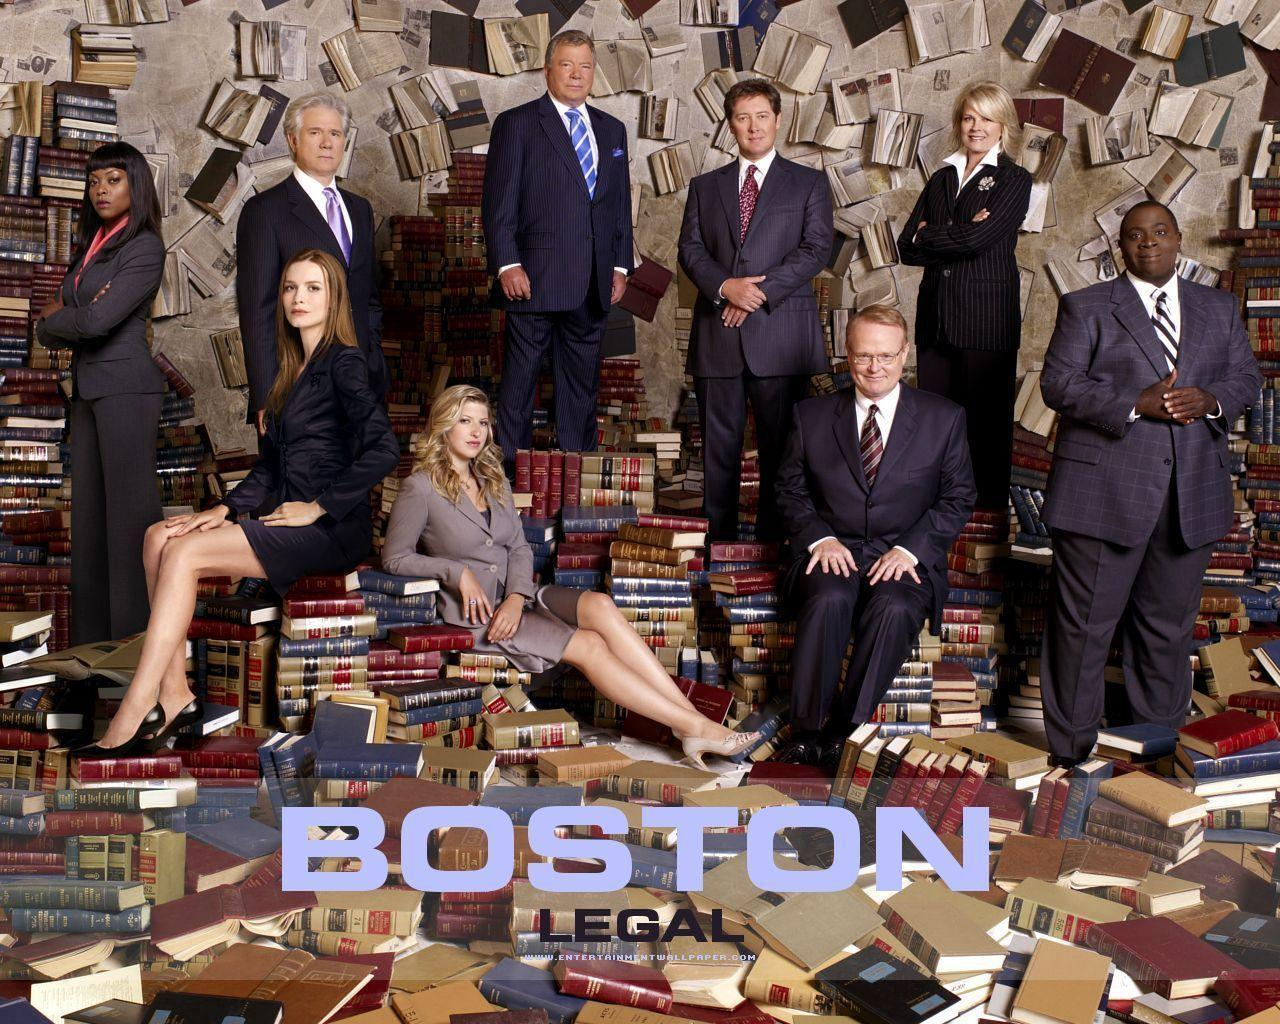 Image gallery for Boston Legal (TV Series) - FilmAffinity